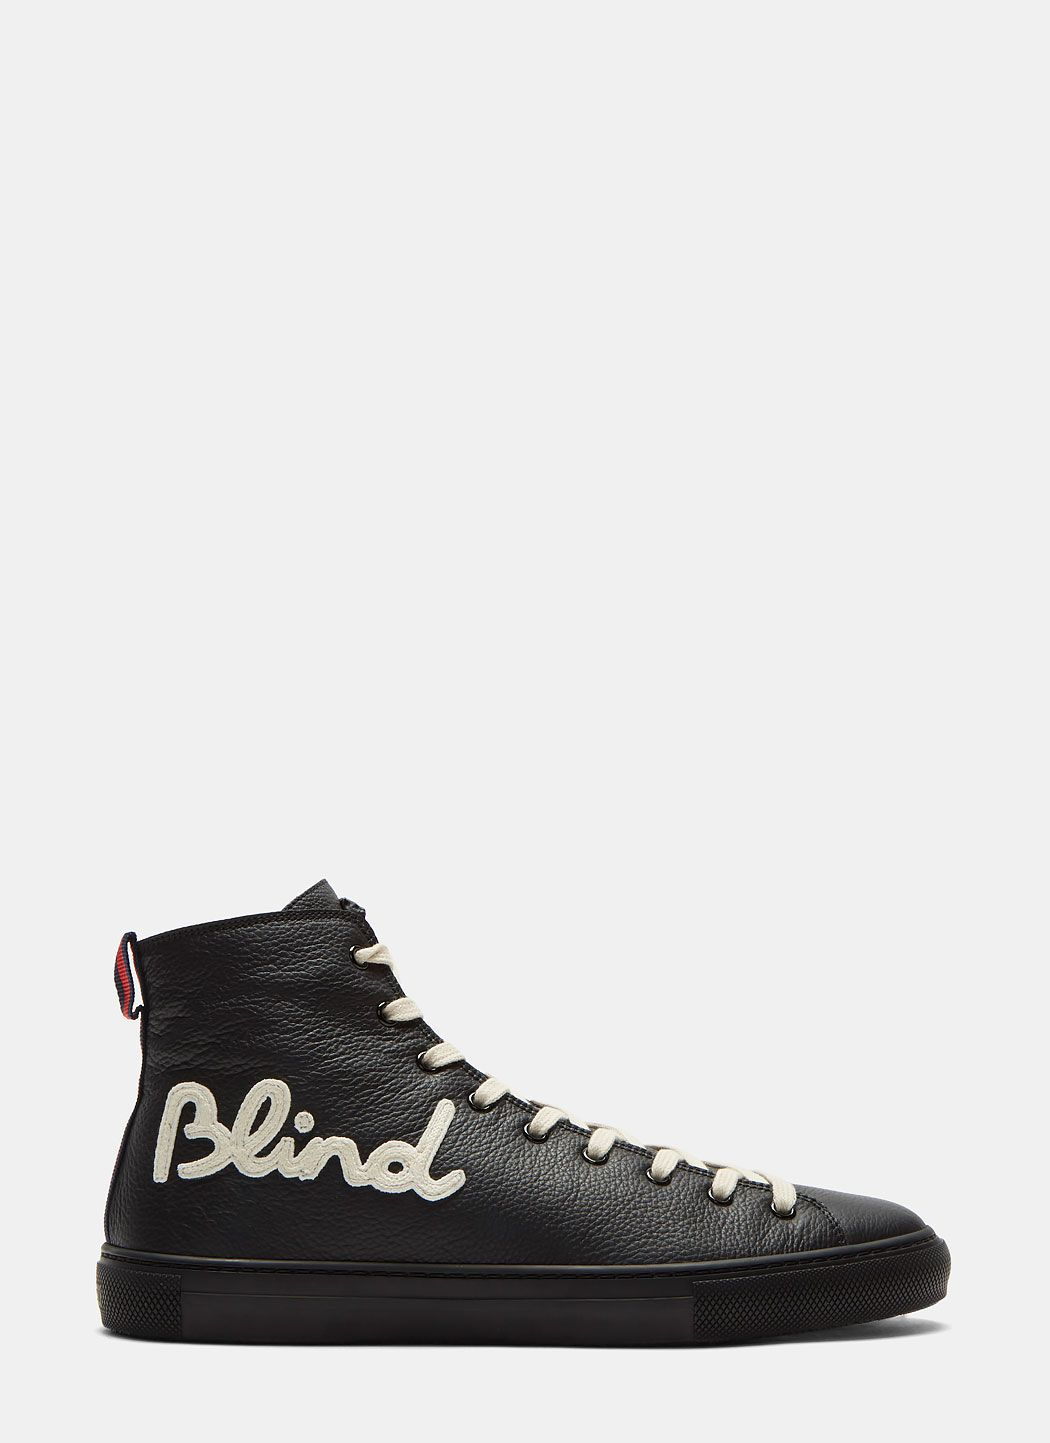 Gucci Blind for Love Embroidered High Sneakers